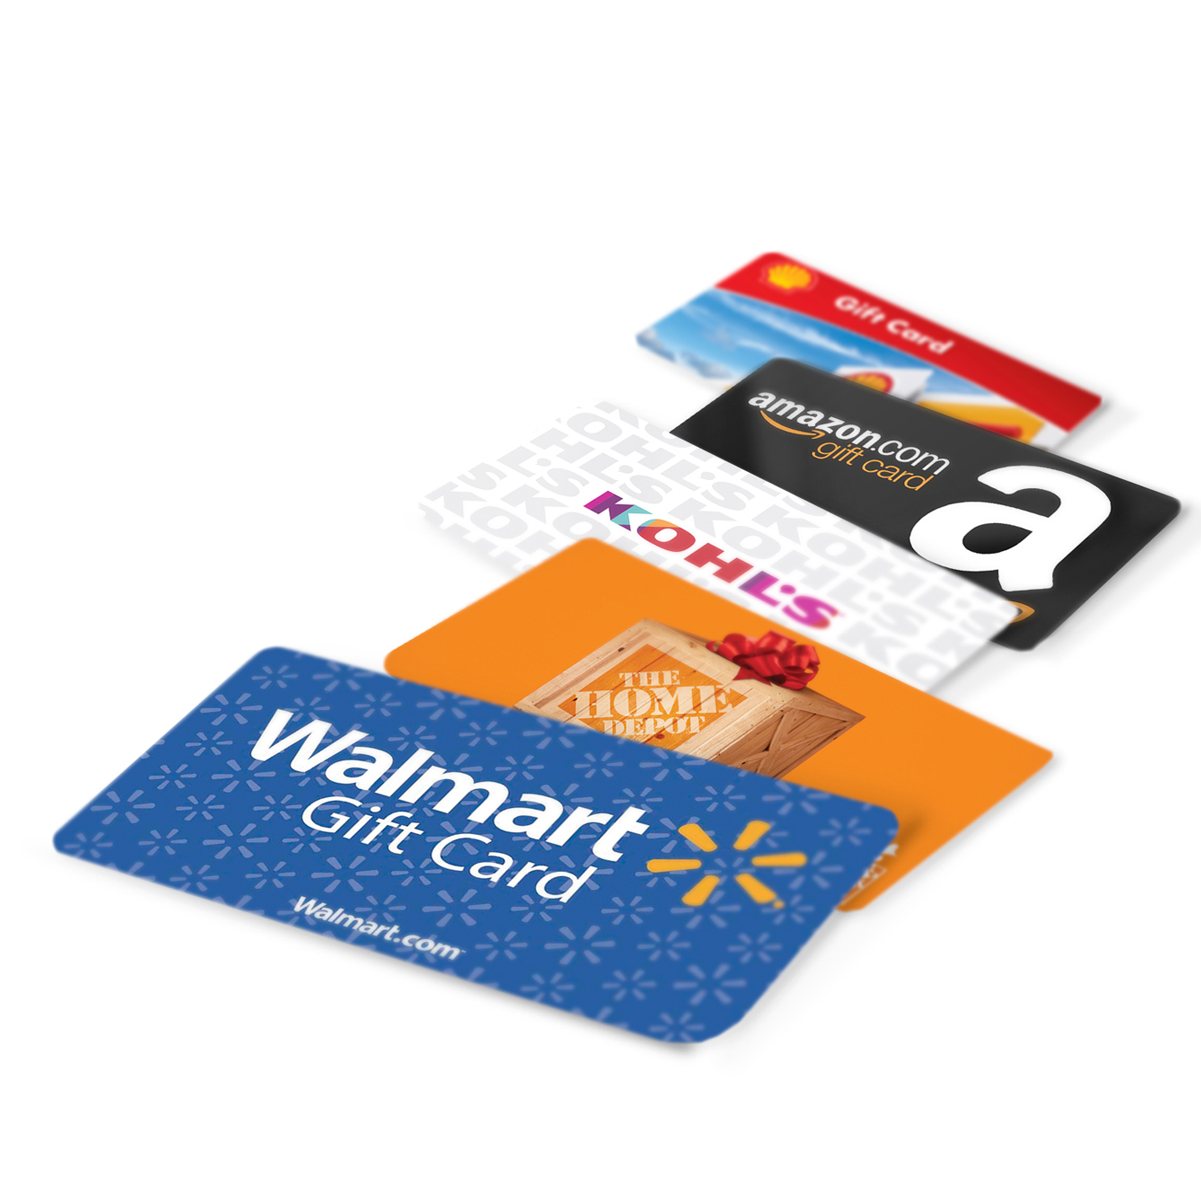 A series of gift cards for Walmart, The Home Depot, Kohl's, Amazon and Shell are laid out on a table.